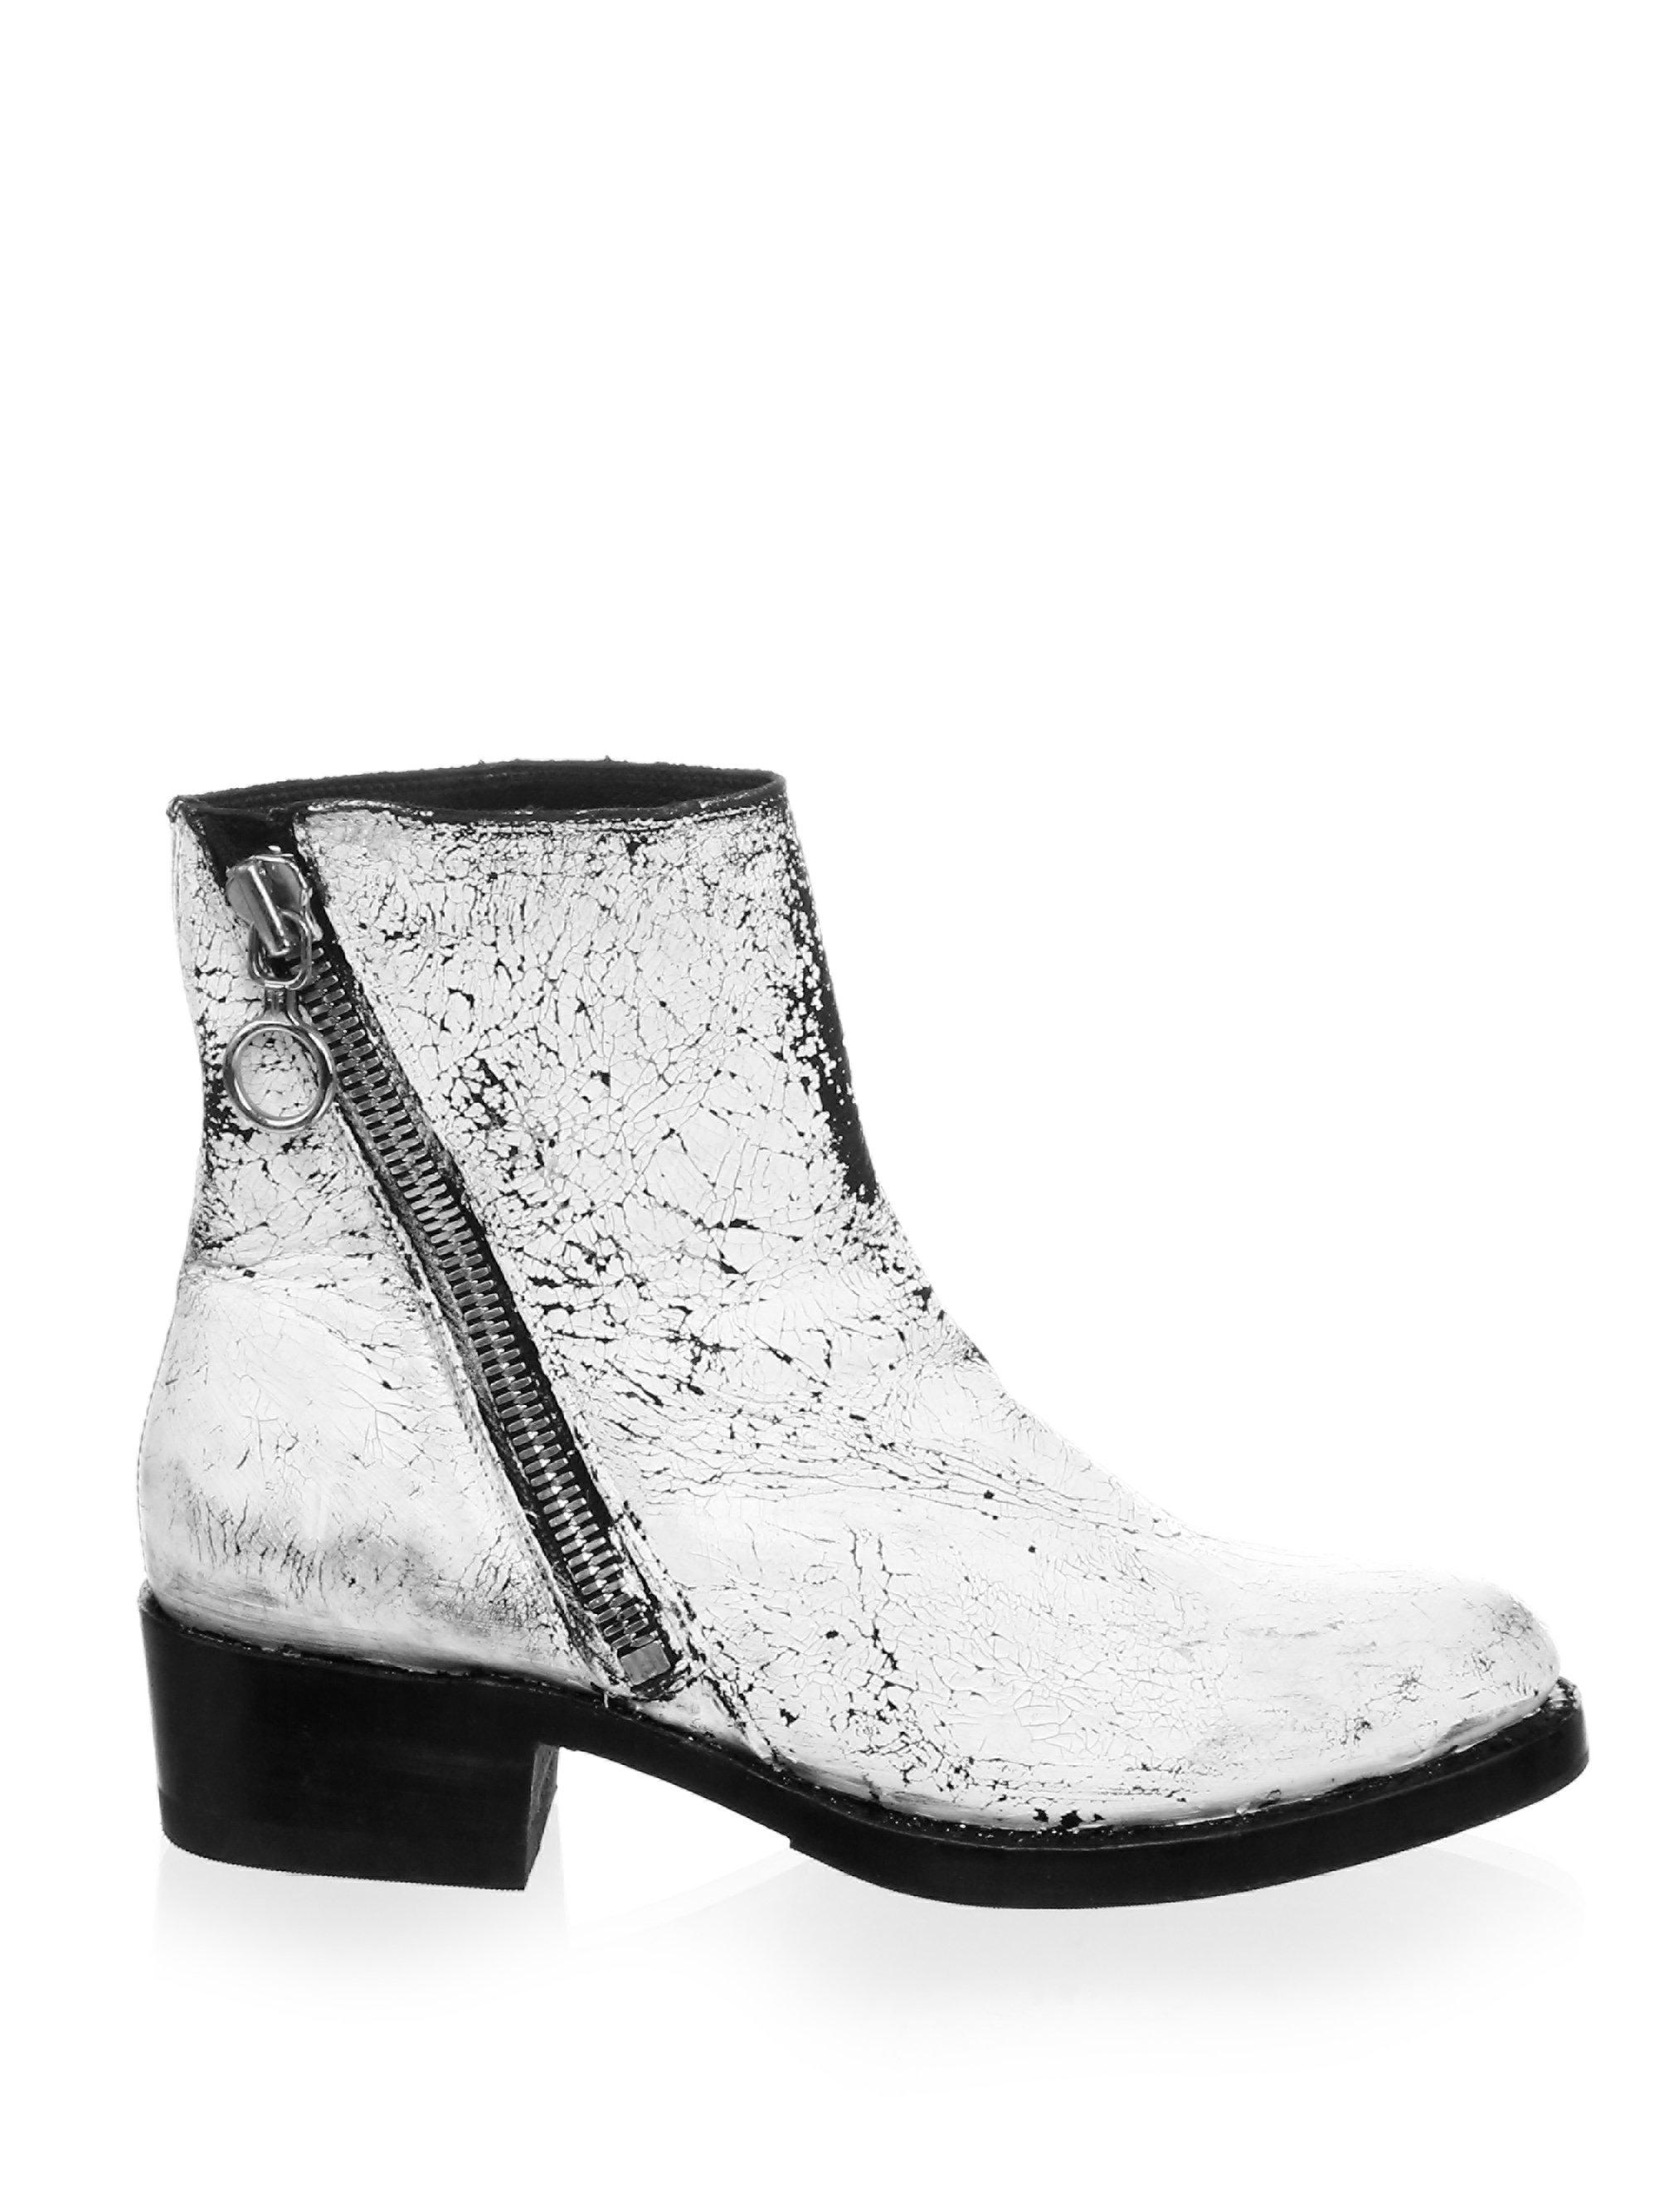 Frye Crackle Paint Patent Leather Booties BySdD